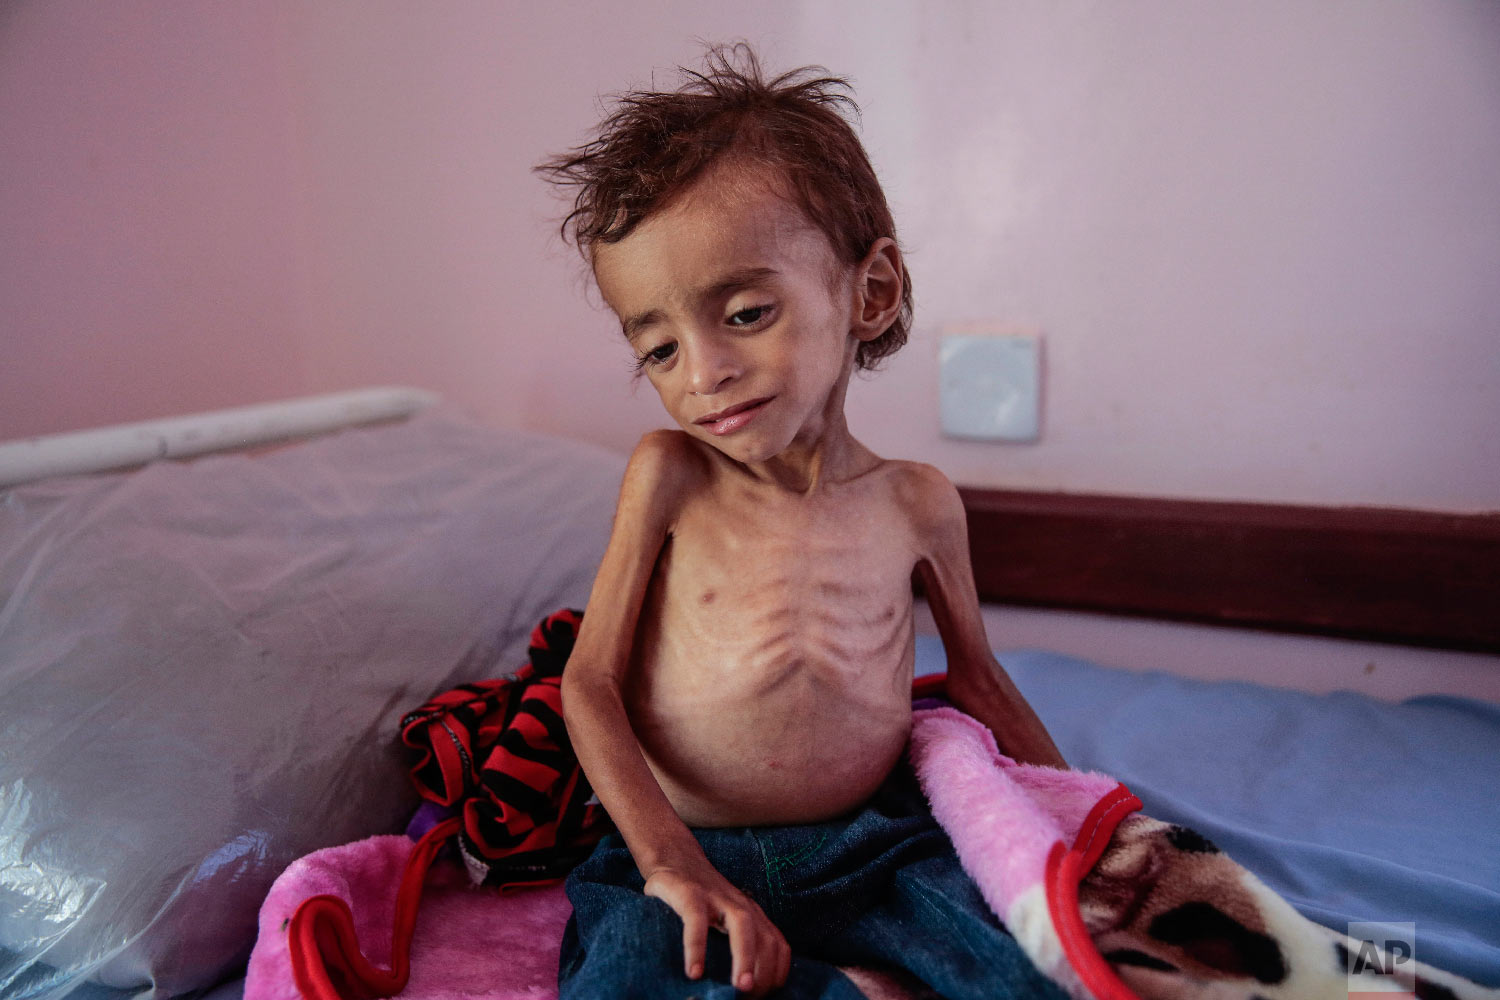 A malnourished boy sits on a hospital bed at the Aslam Health Center, Hajjah, Yemen on Oct. 1, 2018. (AP Photo/Hani Mohammed, File)